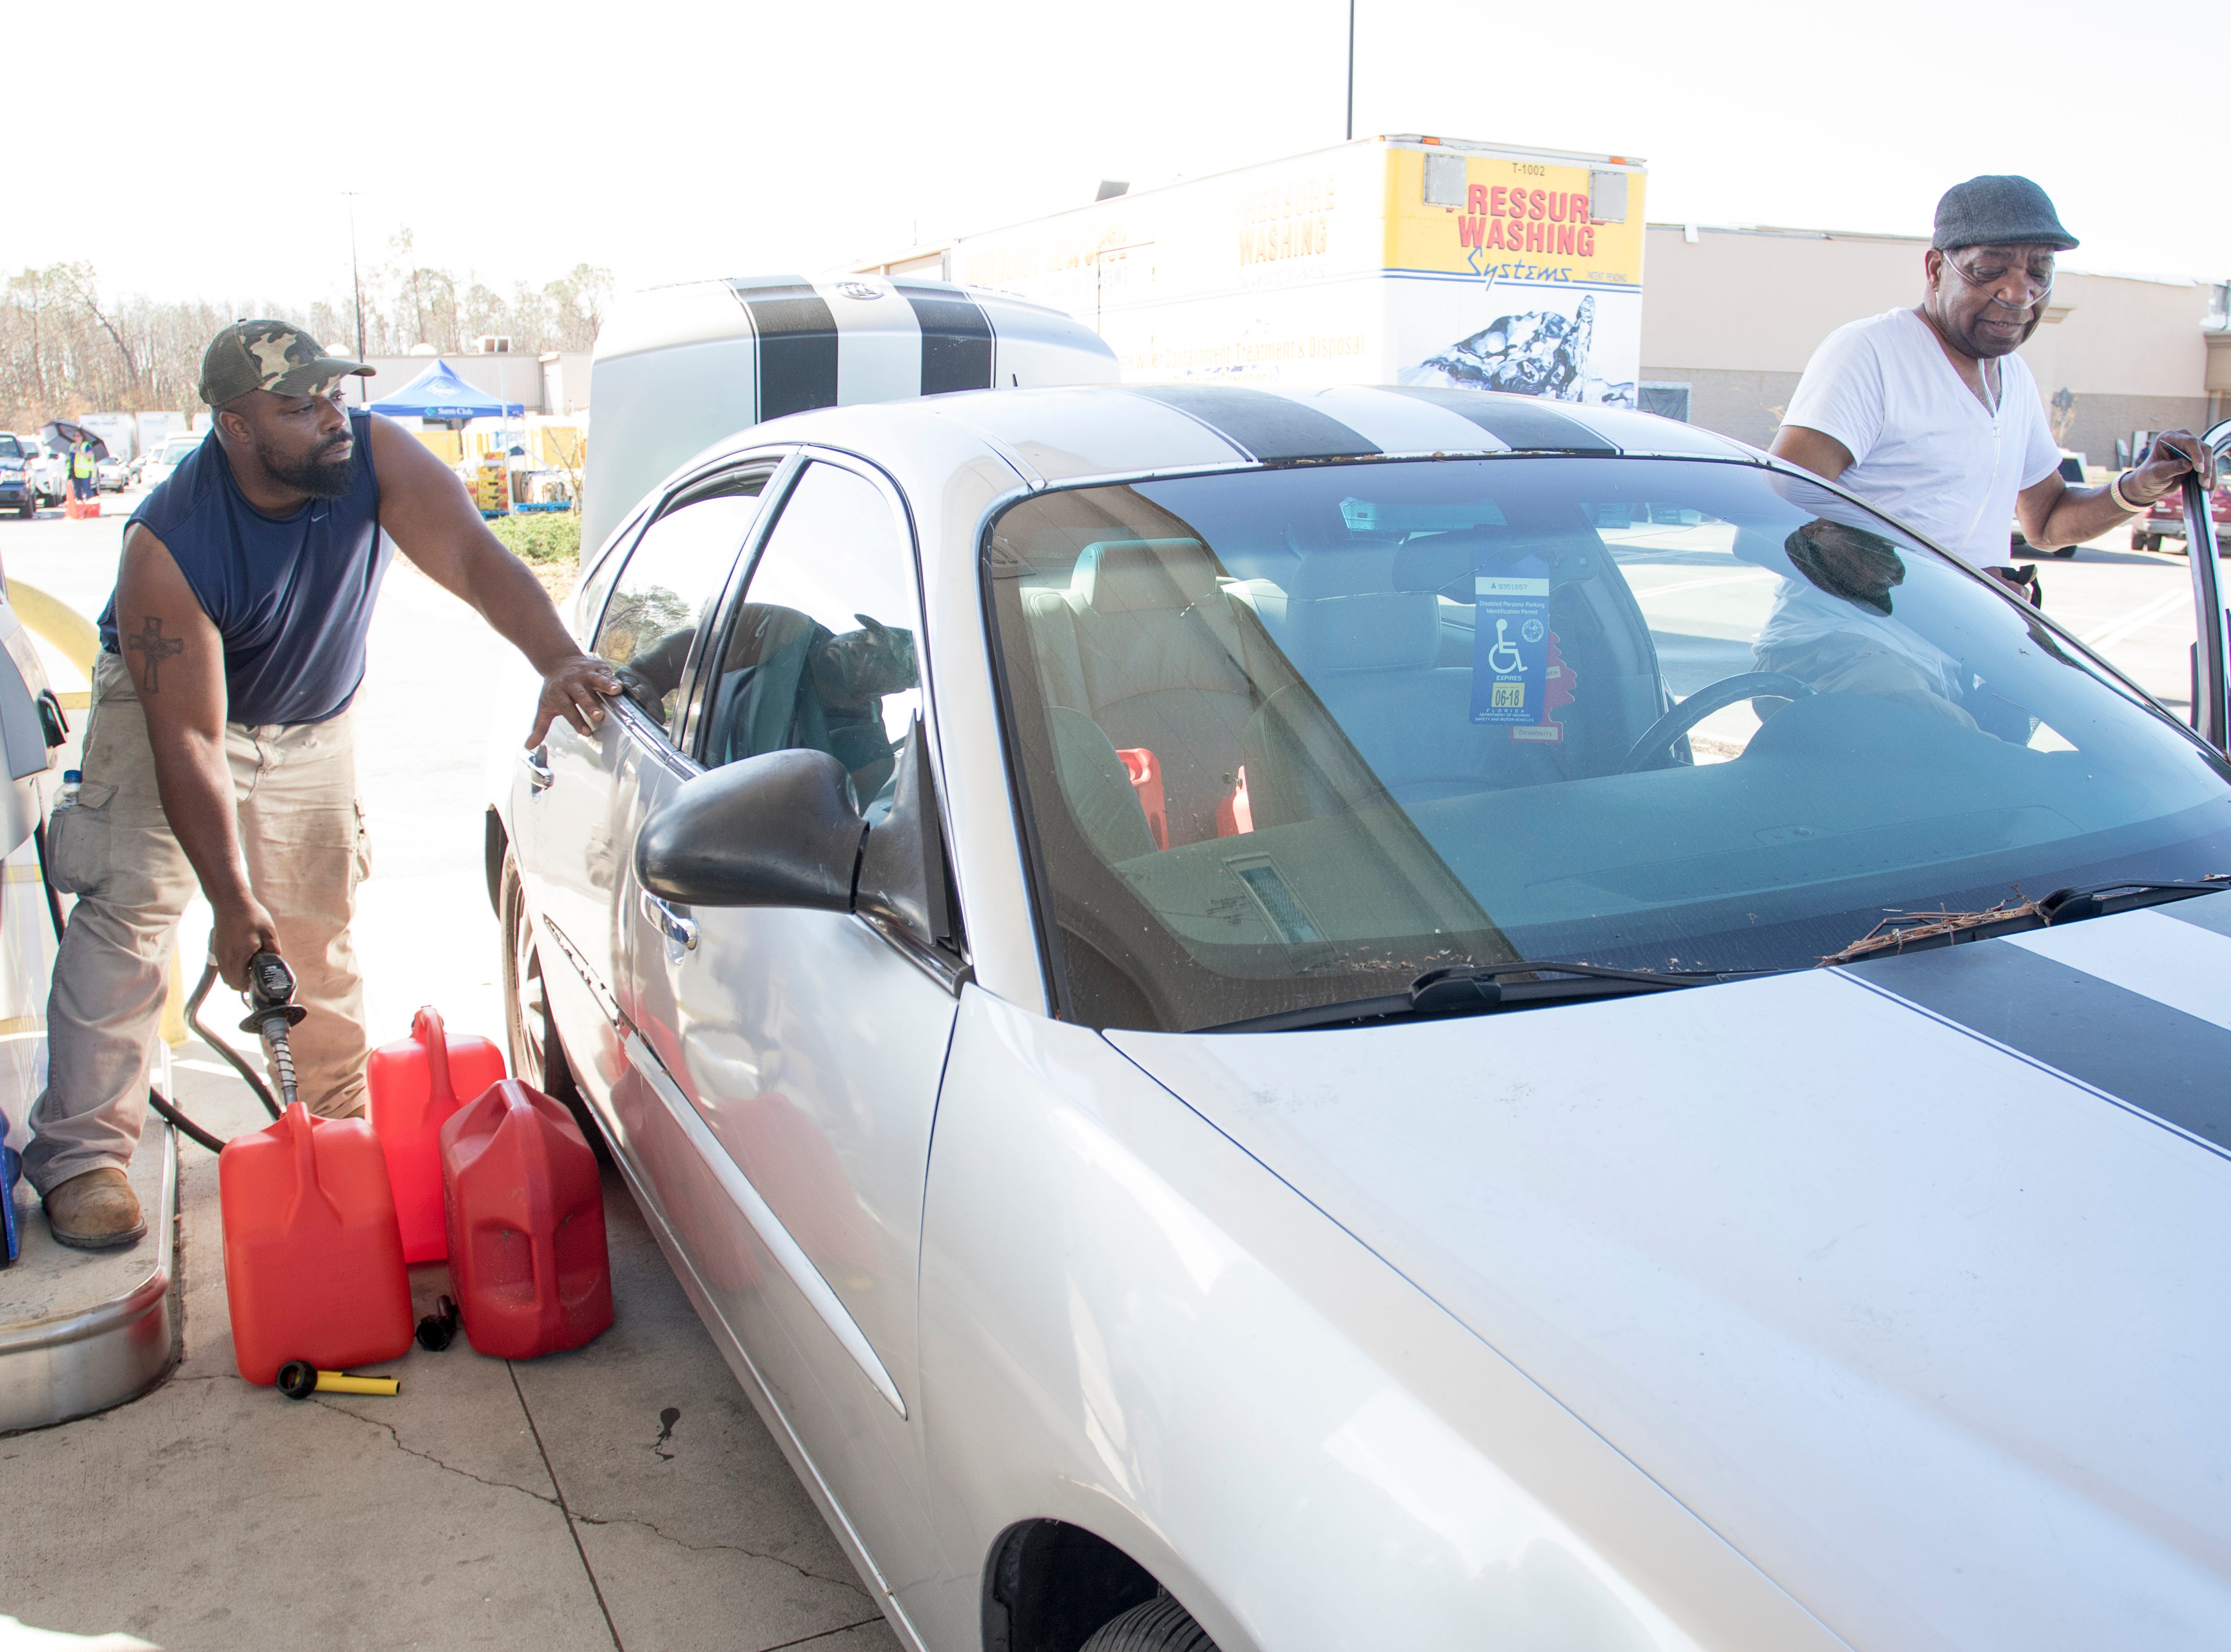 Michael Ross, left, fills gas containers as he father Jimmy Curry, 78, gets back into the car at the Sam's Club on West 23rd Street in Panama City, Florida on Wednesday, October 17, 2018.  Drivers are thrilled that their wait for gas has gone from up to 4 hours earlier in the week down to 30 to 45 minutes today.